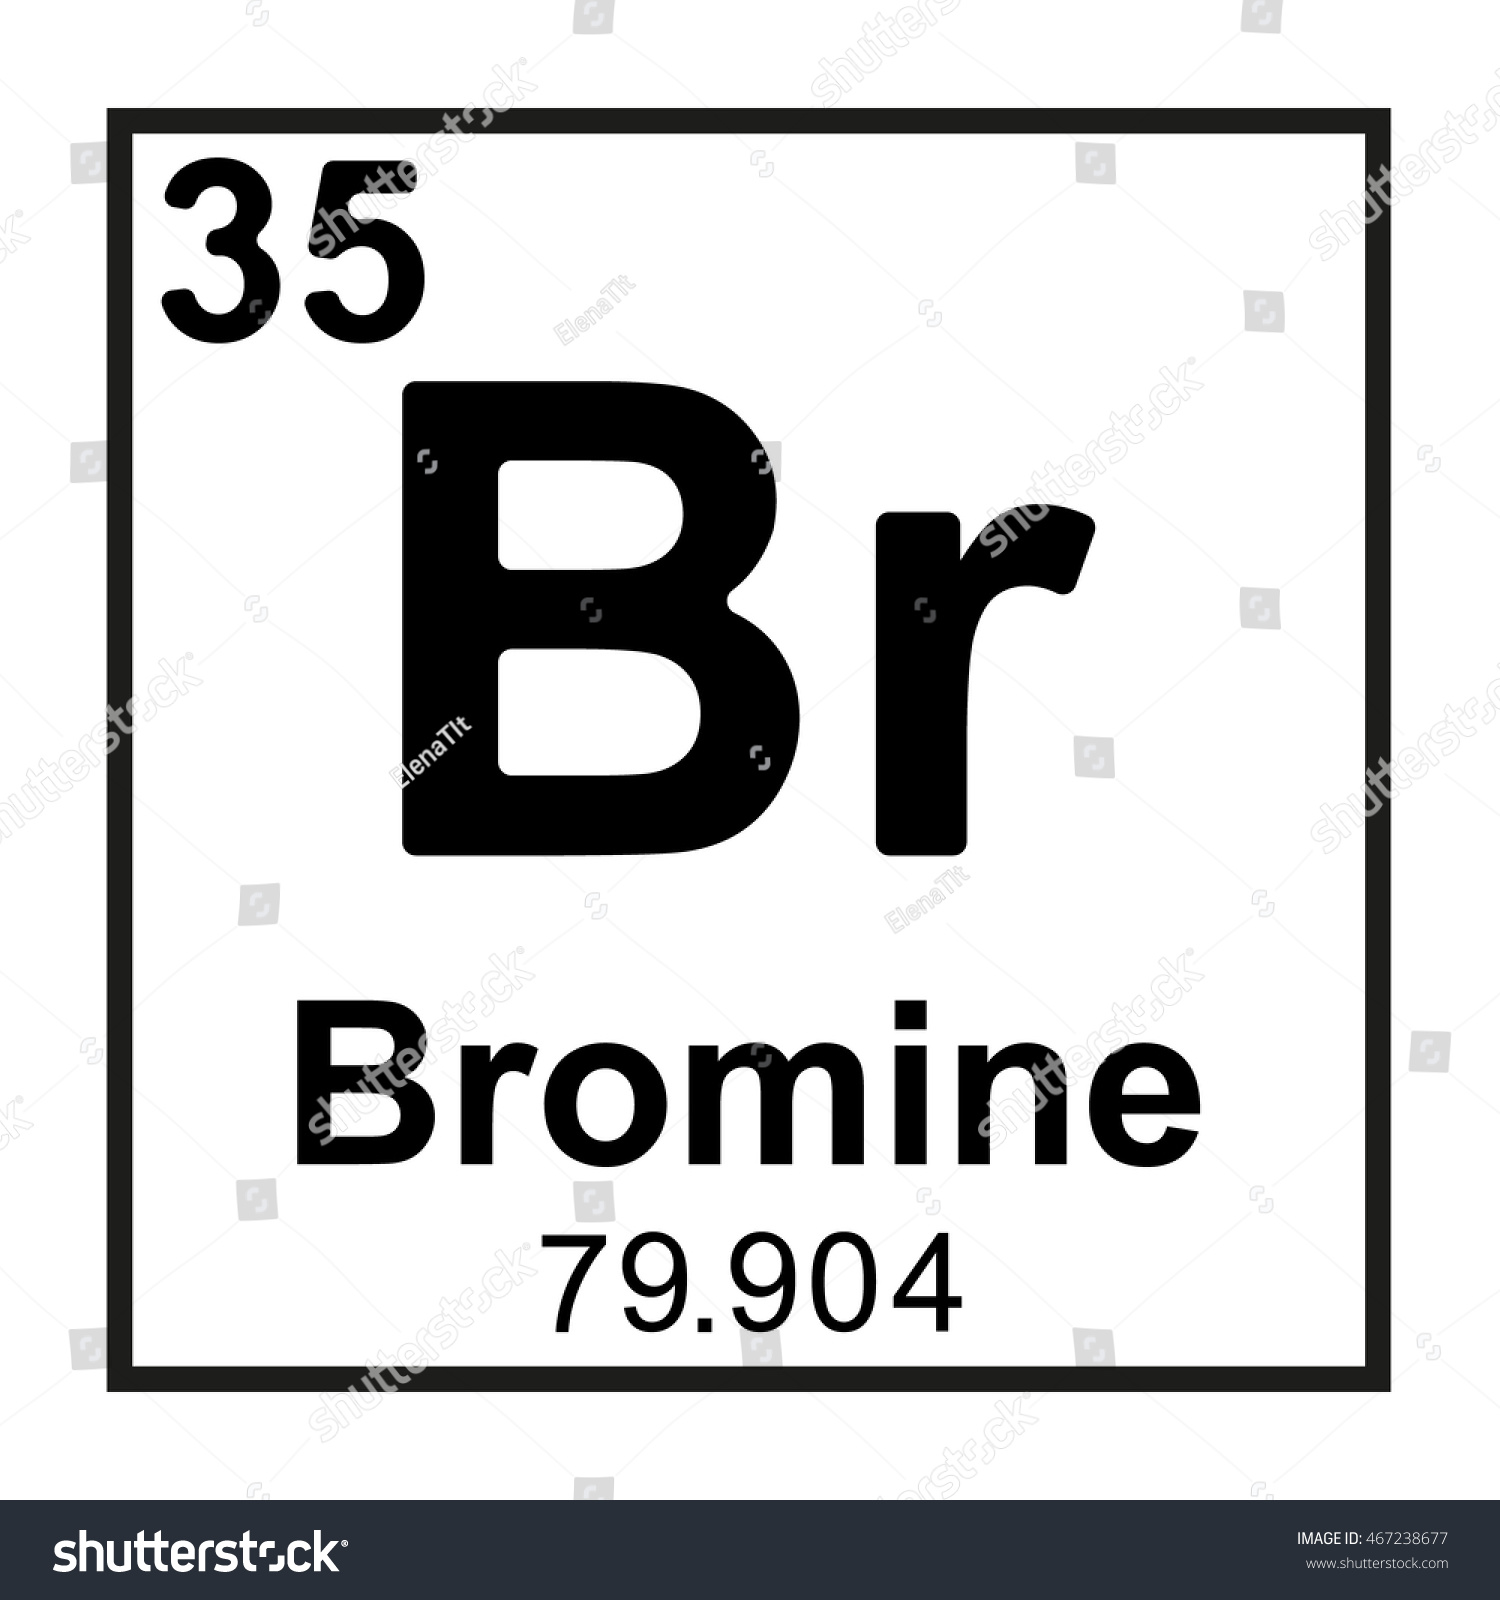 Periodic table element bromine stock vector 467238677 shutterstock periodic table element bromine urtaz